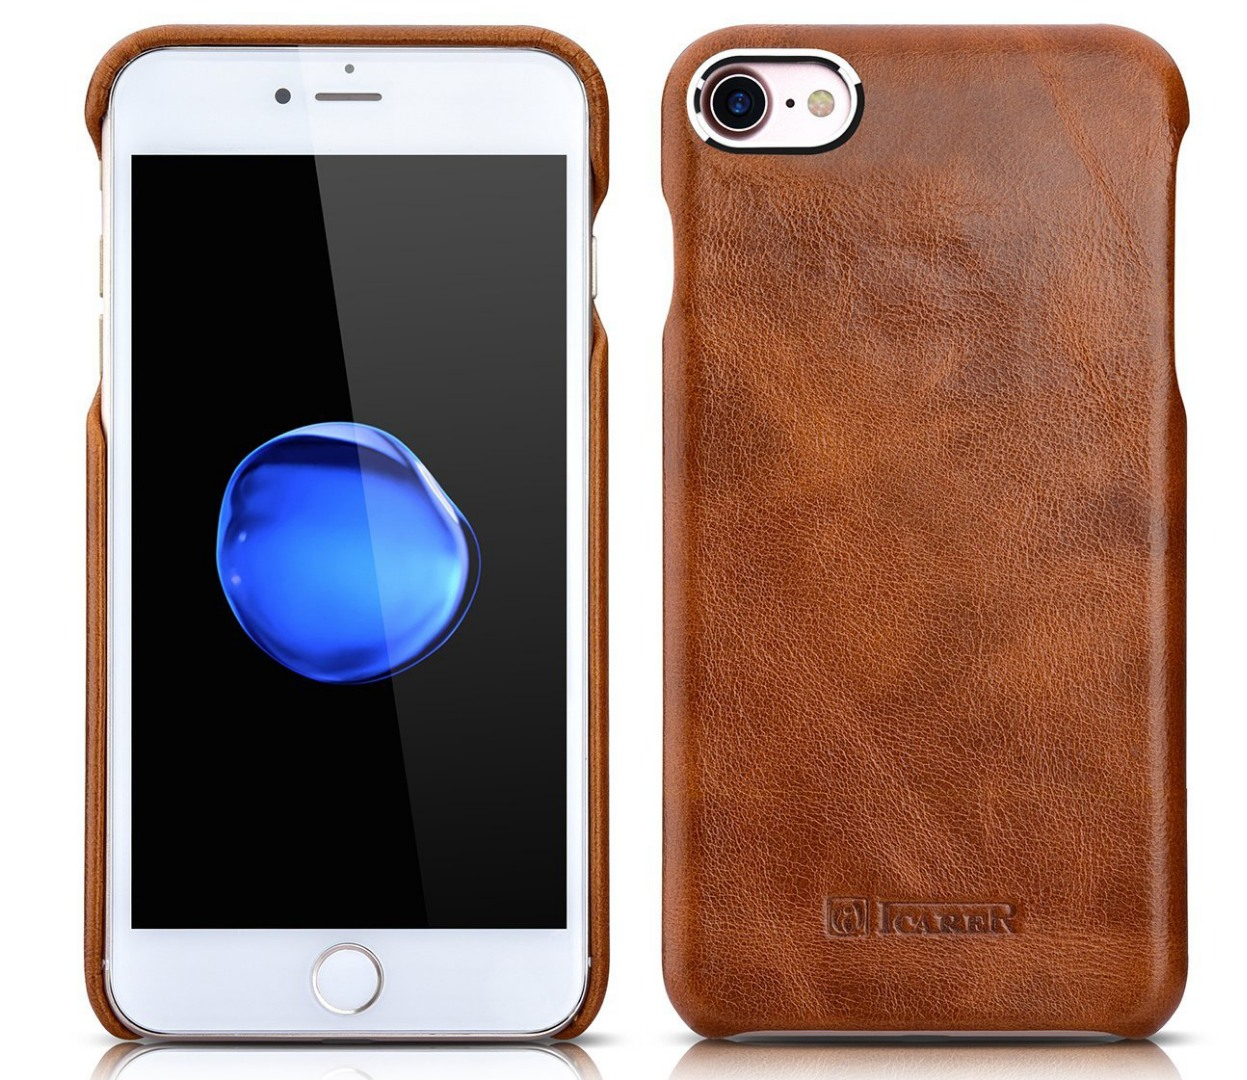 Husa din piele naturala, tip back cover, iPhone SE 2 (2020), iPhone 8, iPhone 7 - iCarer Vintage Oil Wax, Maro tabac